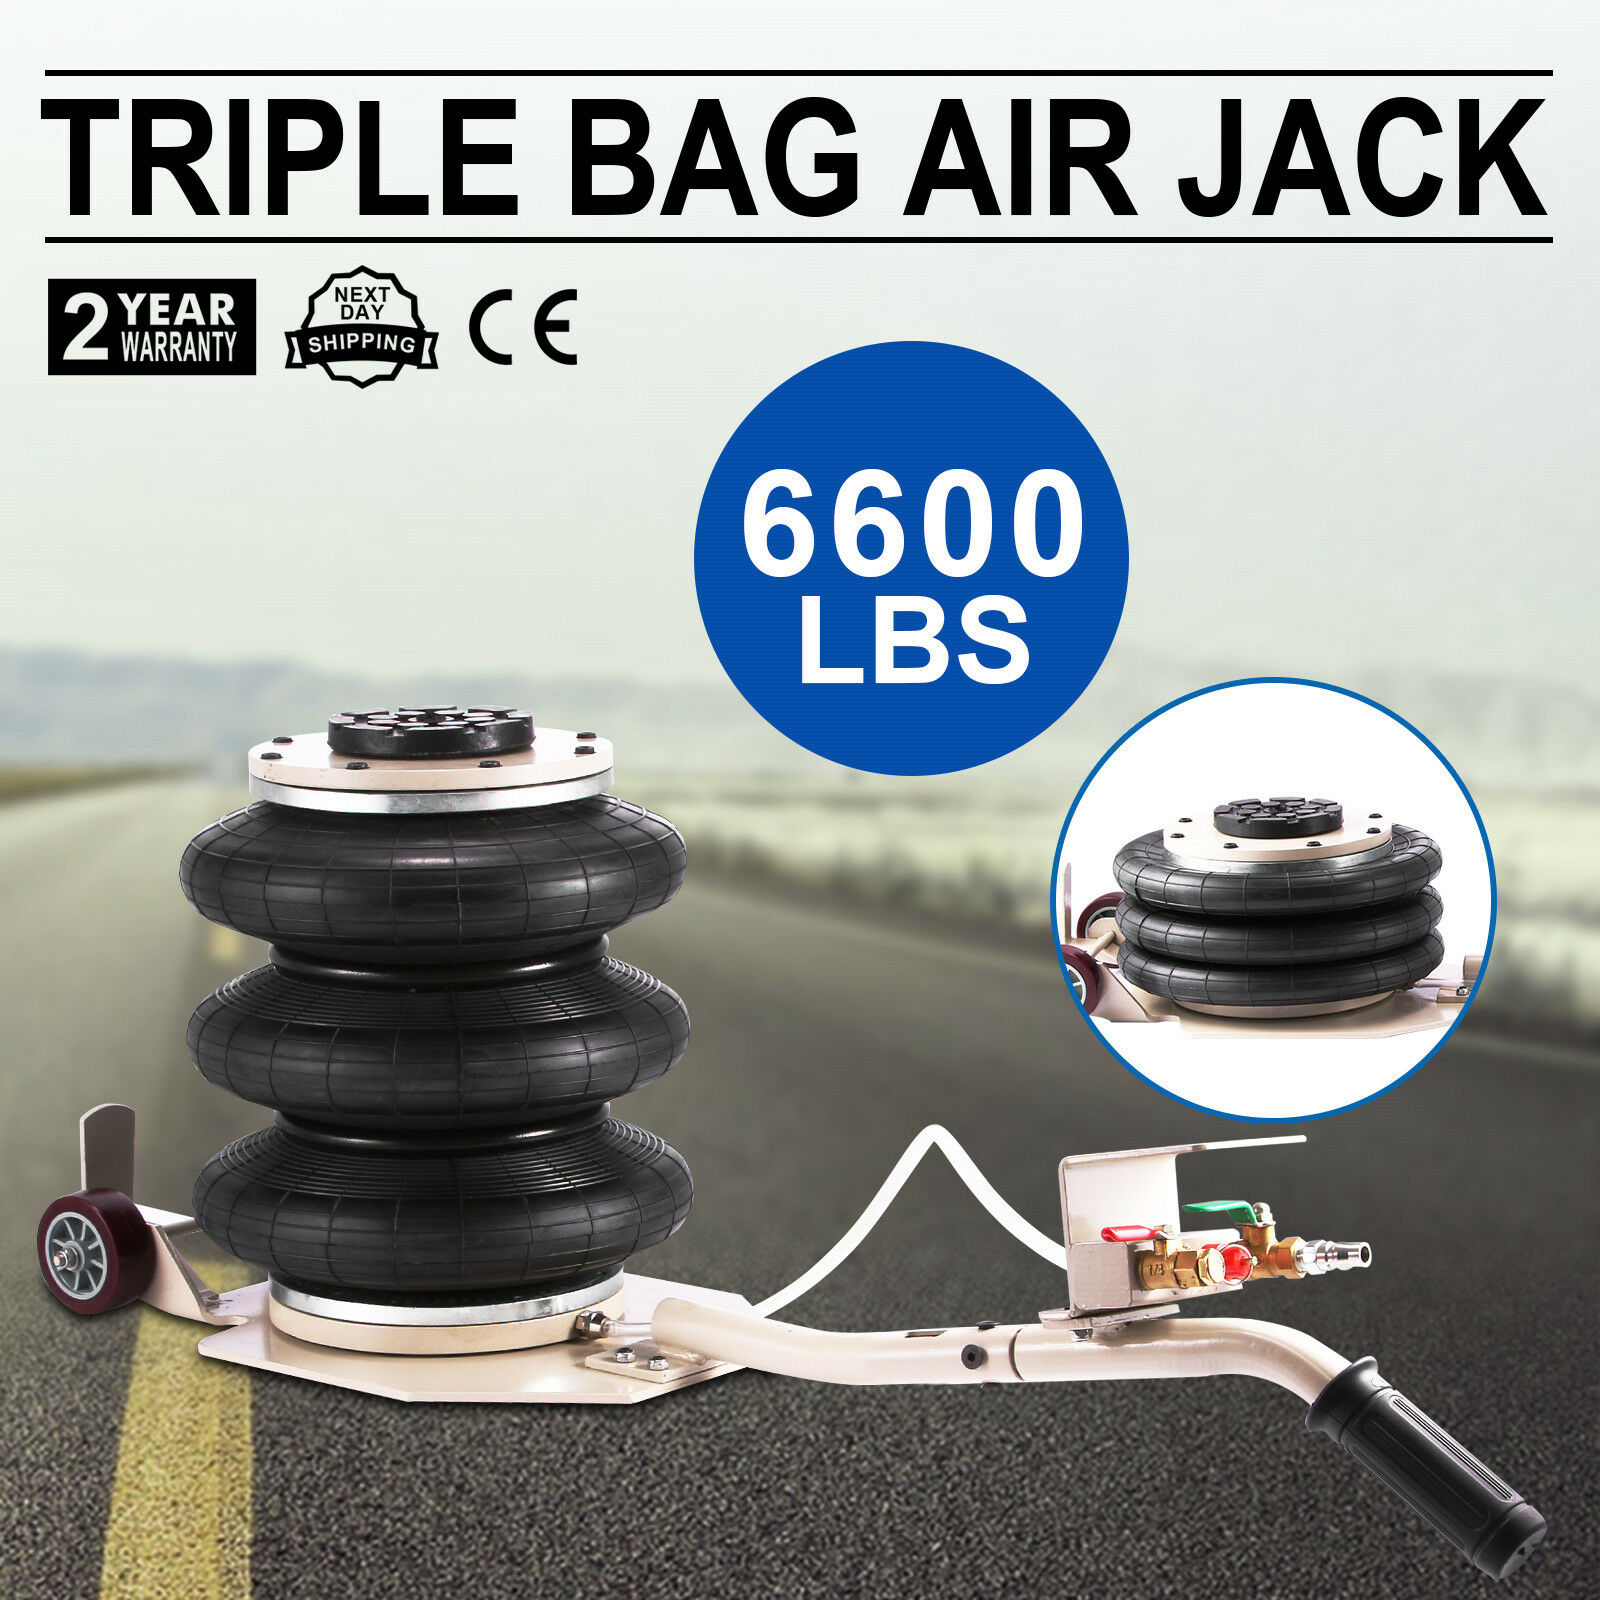 Triple Bag Air Jack Pneumatic Jack 6600LBS Quick Lift 3 Ton Heavy Duty Jacking 16 Inch Lifting Height Pneumatic Air Jack 6600LBS